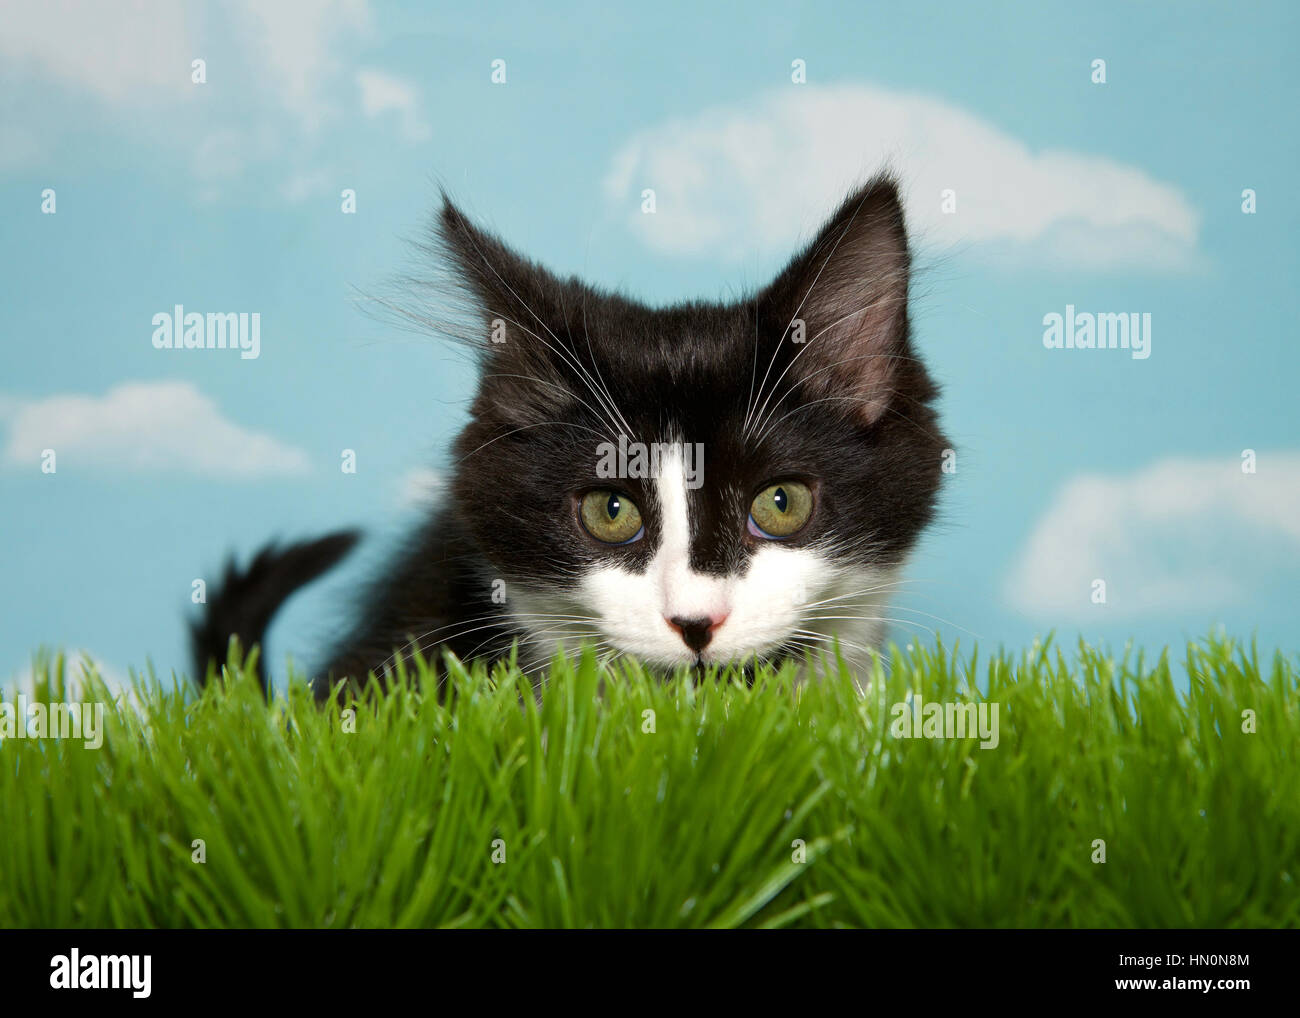 Black and white medium hair kitten crouched in long grass, blue background sky with clouds. Copy Space - Stock Image